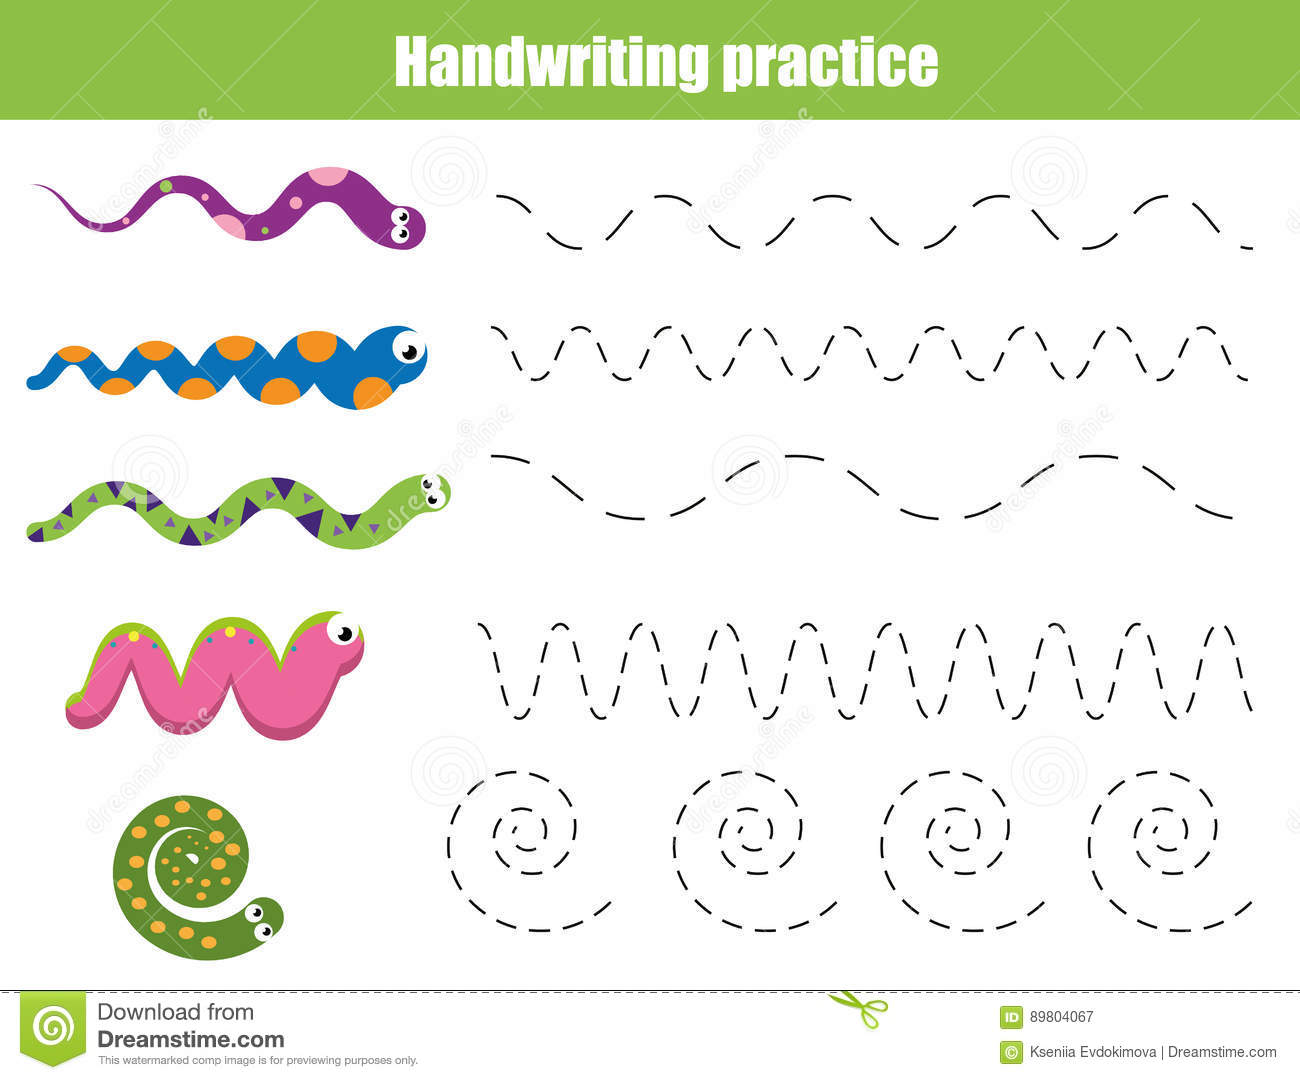 Handwriting Practice Sheet Educational Children Game Printable – Worksheet for Kids